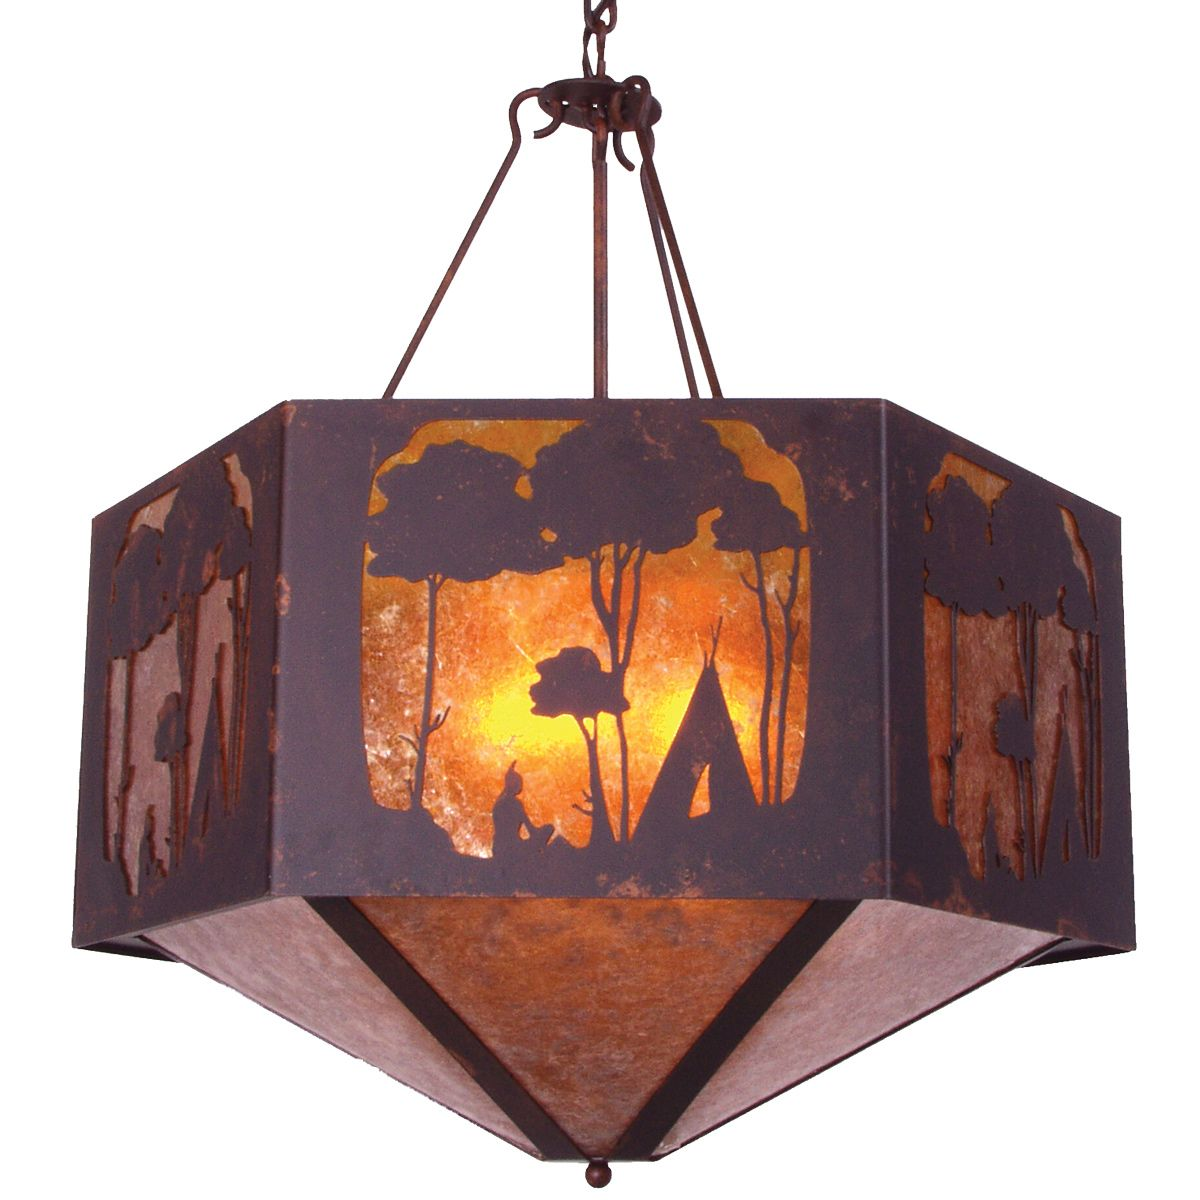 Wallowa Rust Chandelier